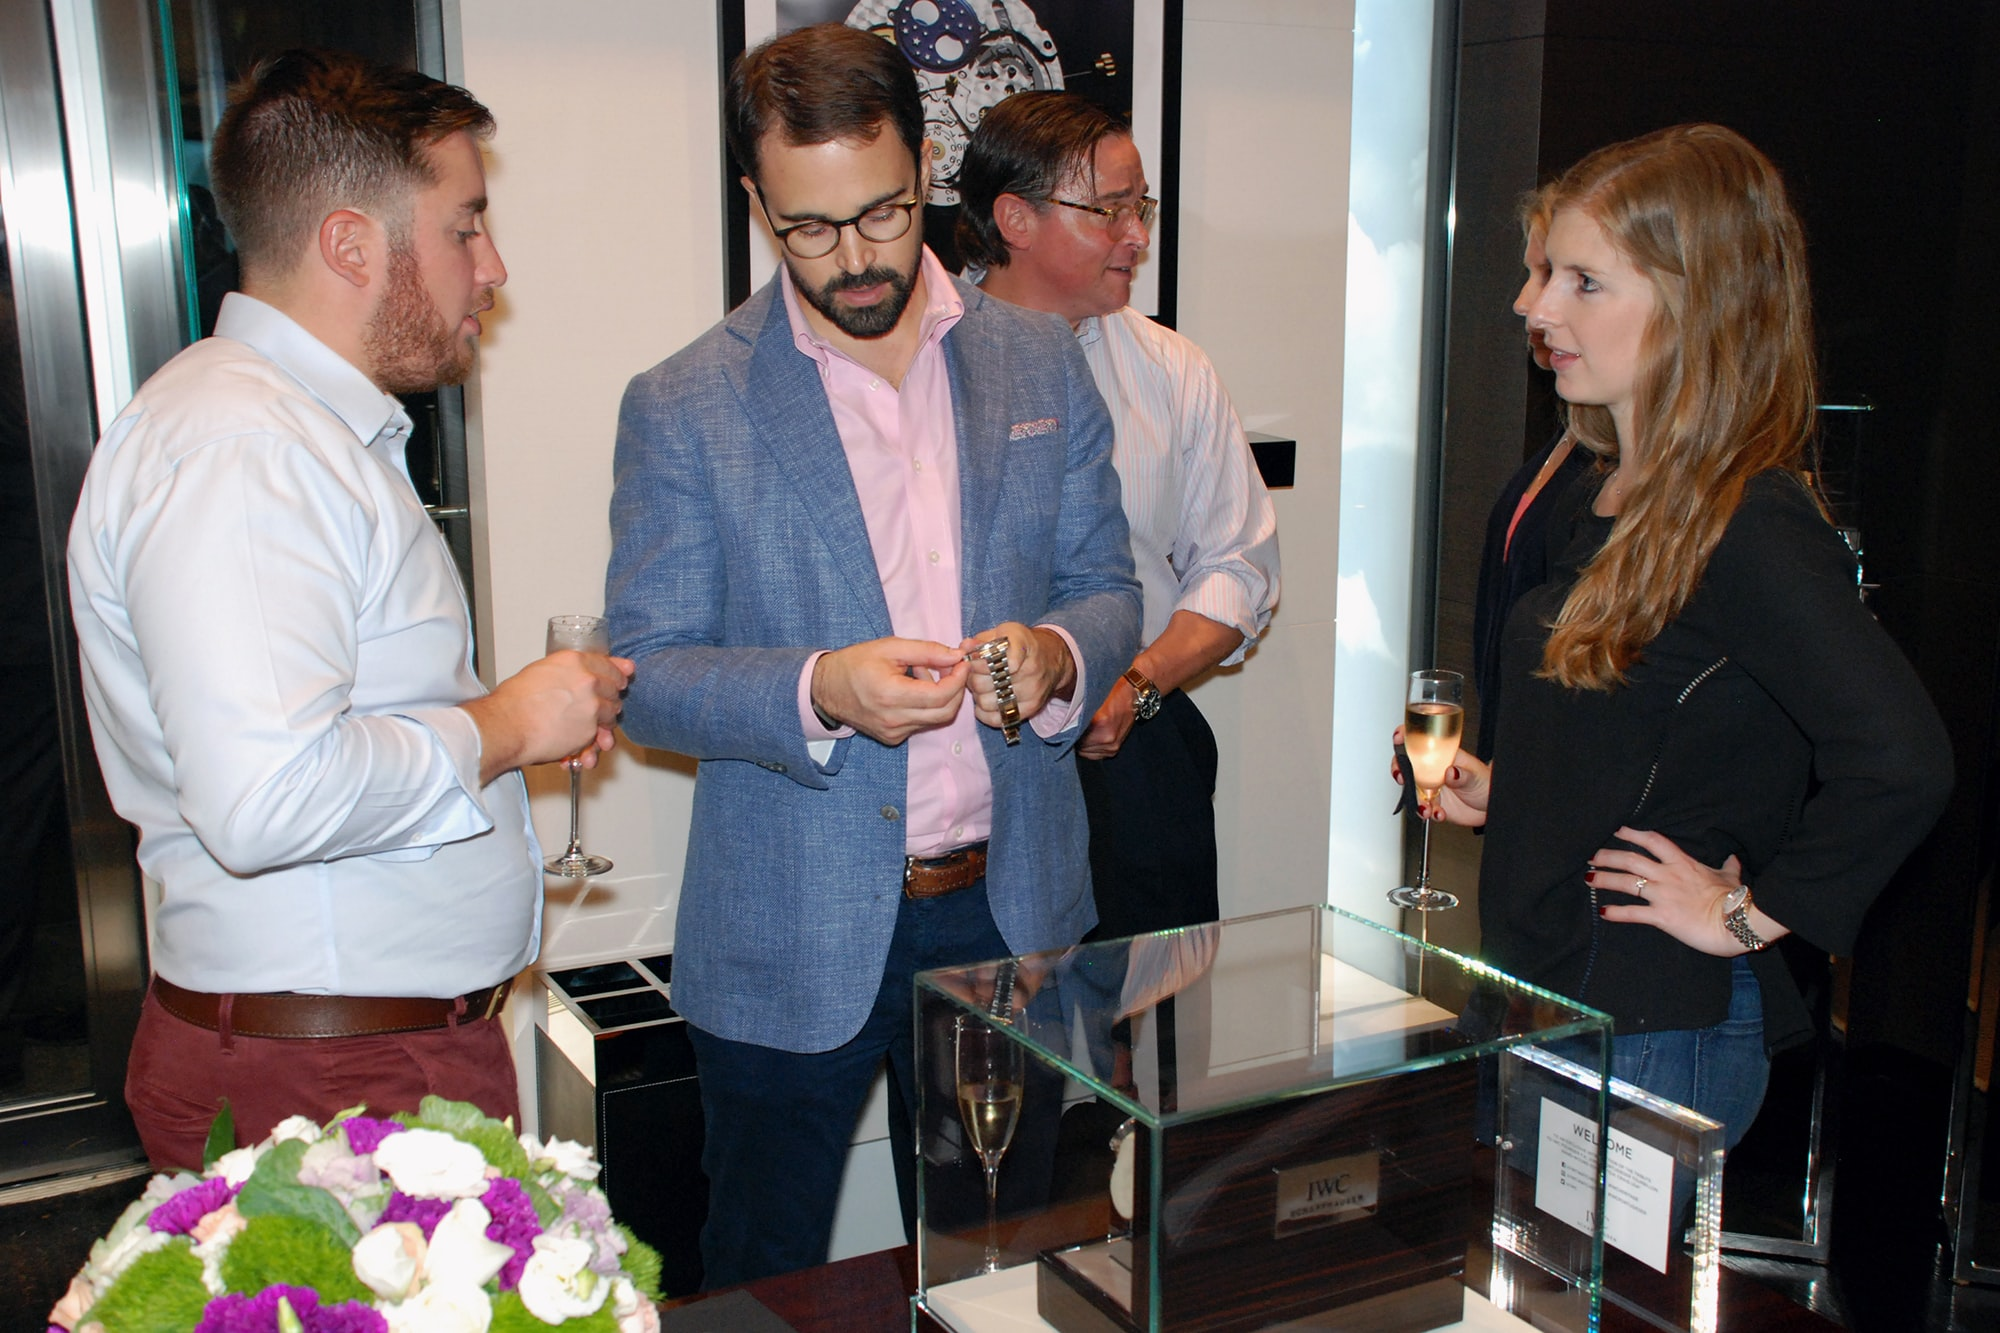 Photo Report: HODINKEE And IWC Celebrate The Portugieser Hand-Wound Tourbillion Edition 'D.H. Craig USA' In New York Photo Report: HODINKEE And IWC Celebrate The Portugieser Hand-Wound Tourbillion Edition 'D.H. Craig USA' In New York 0119 copy